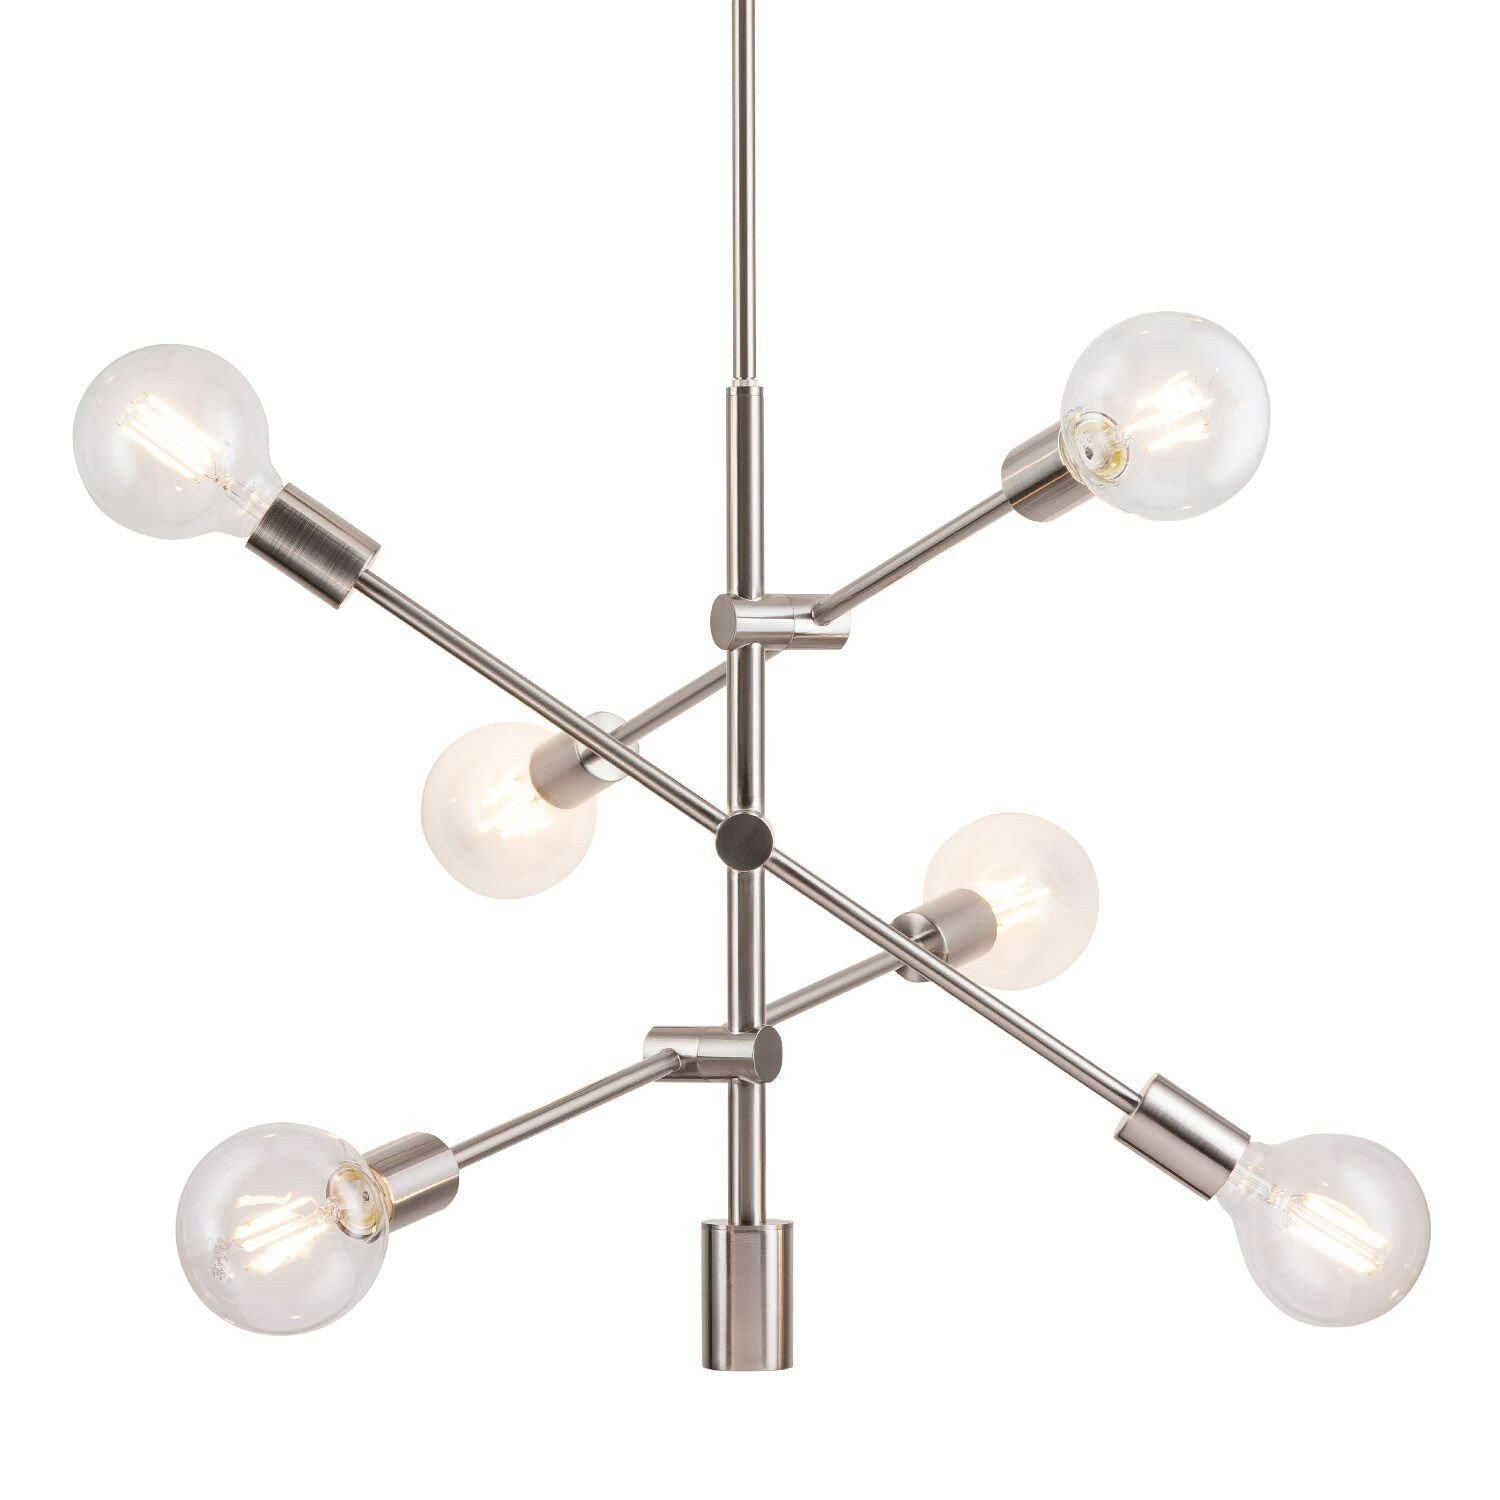 Eladia 6 Light Sputnik Chandelier With Vroman 12 Light Sputnik Chandeliers (View 13 of 30)